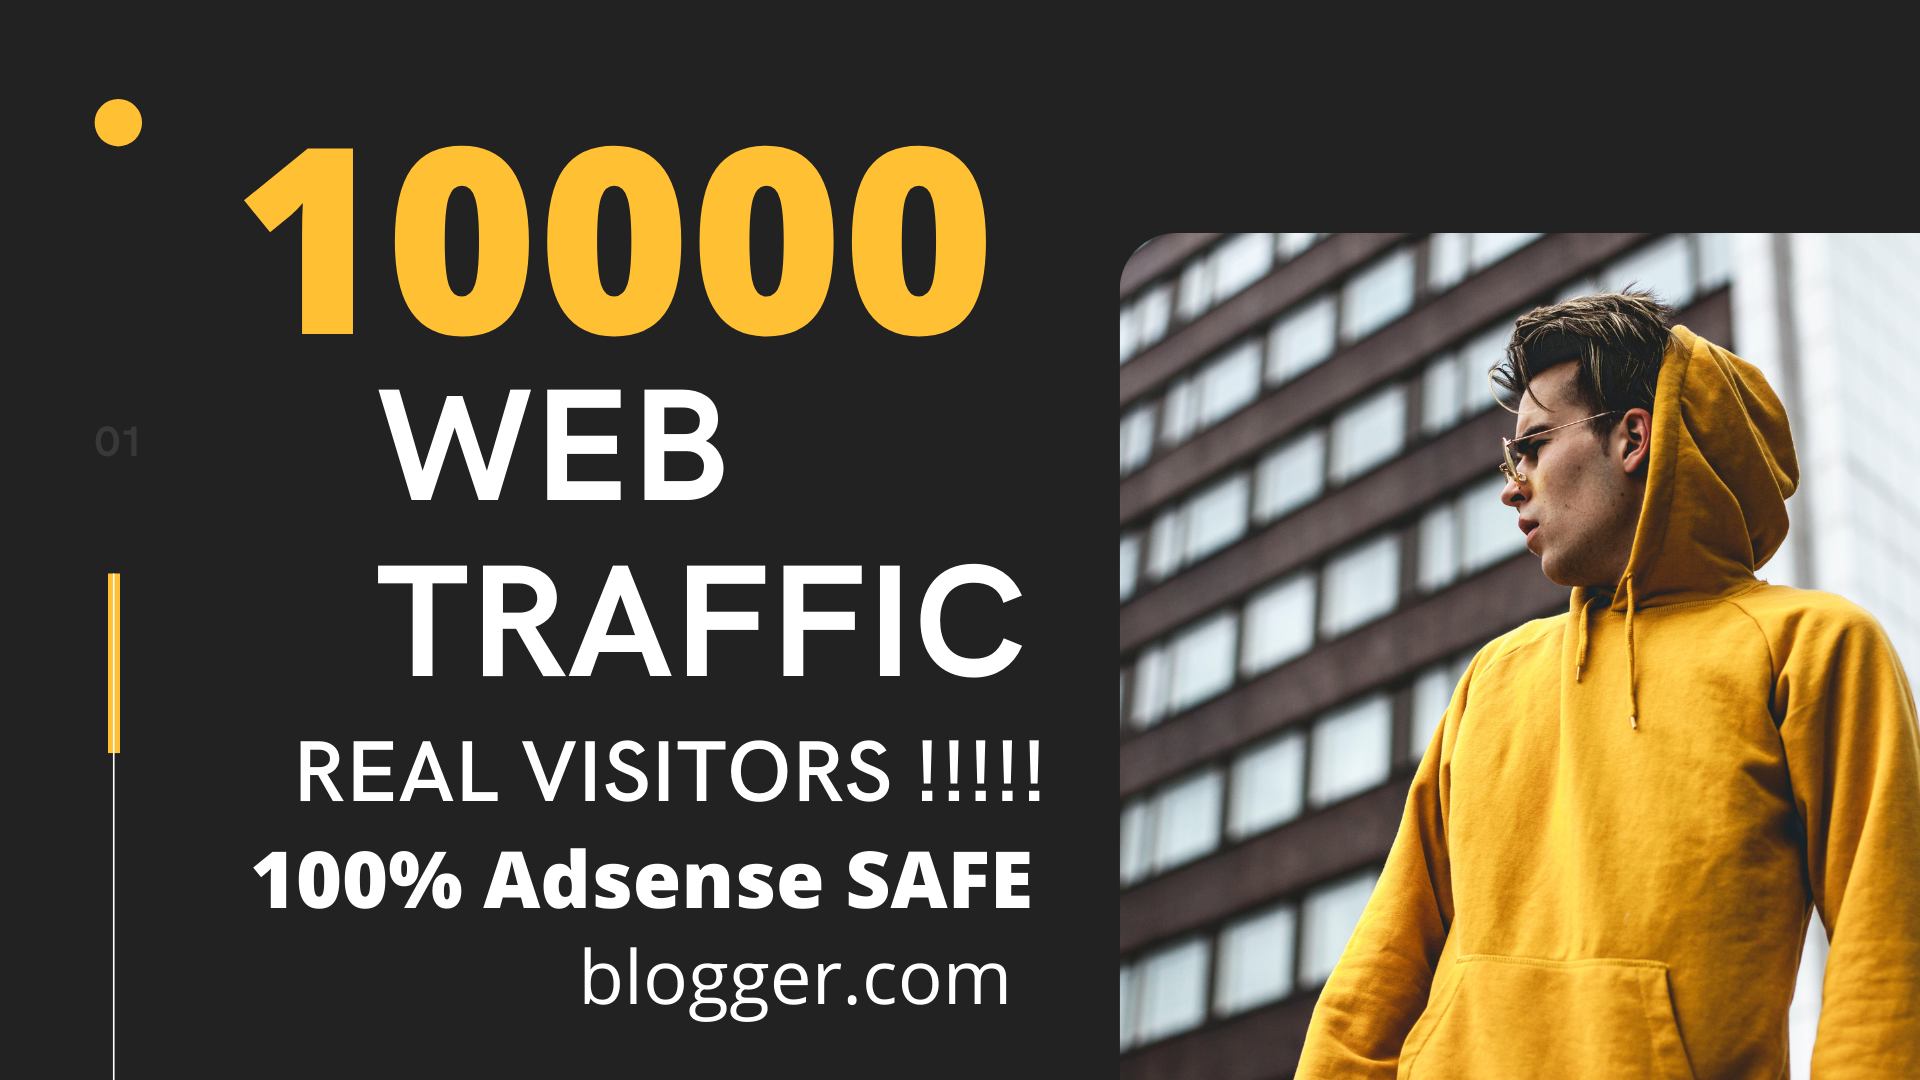 Are you looking for real visitors to your website So YOU ARE IN THE RIGHT PLACE